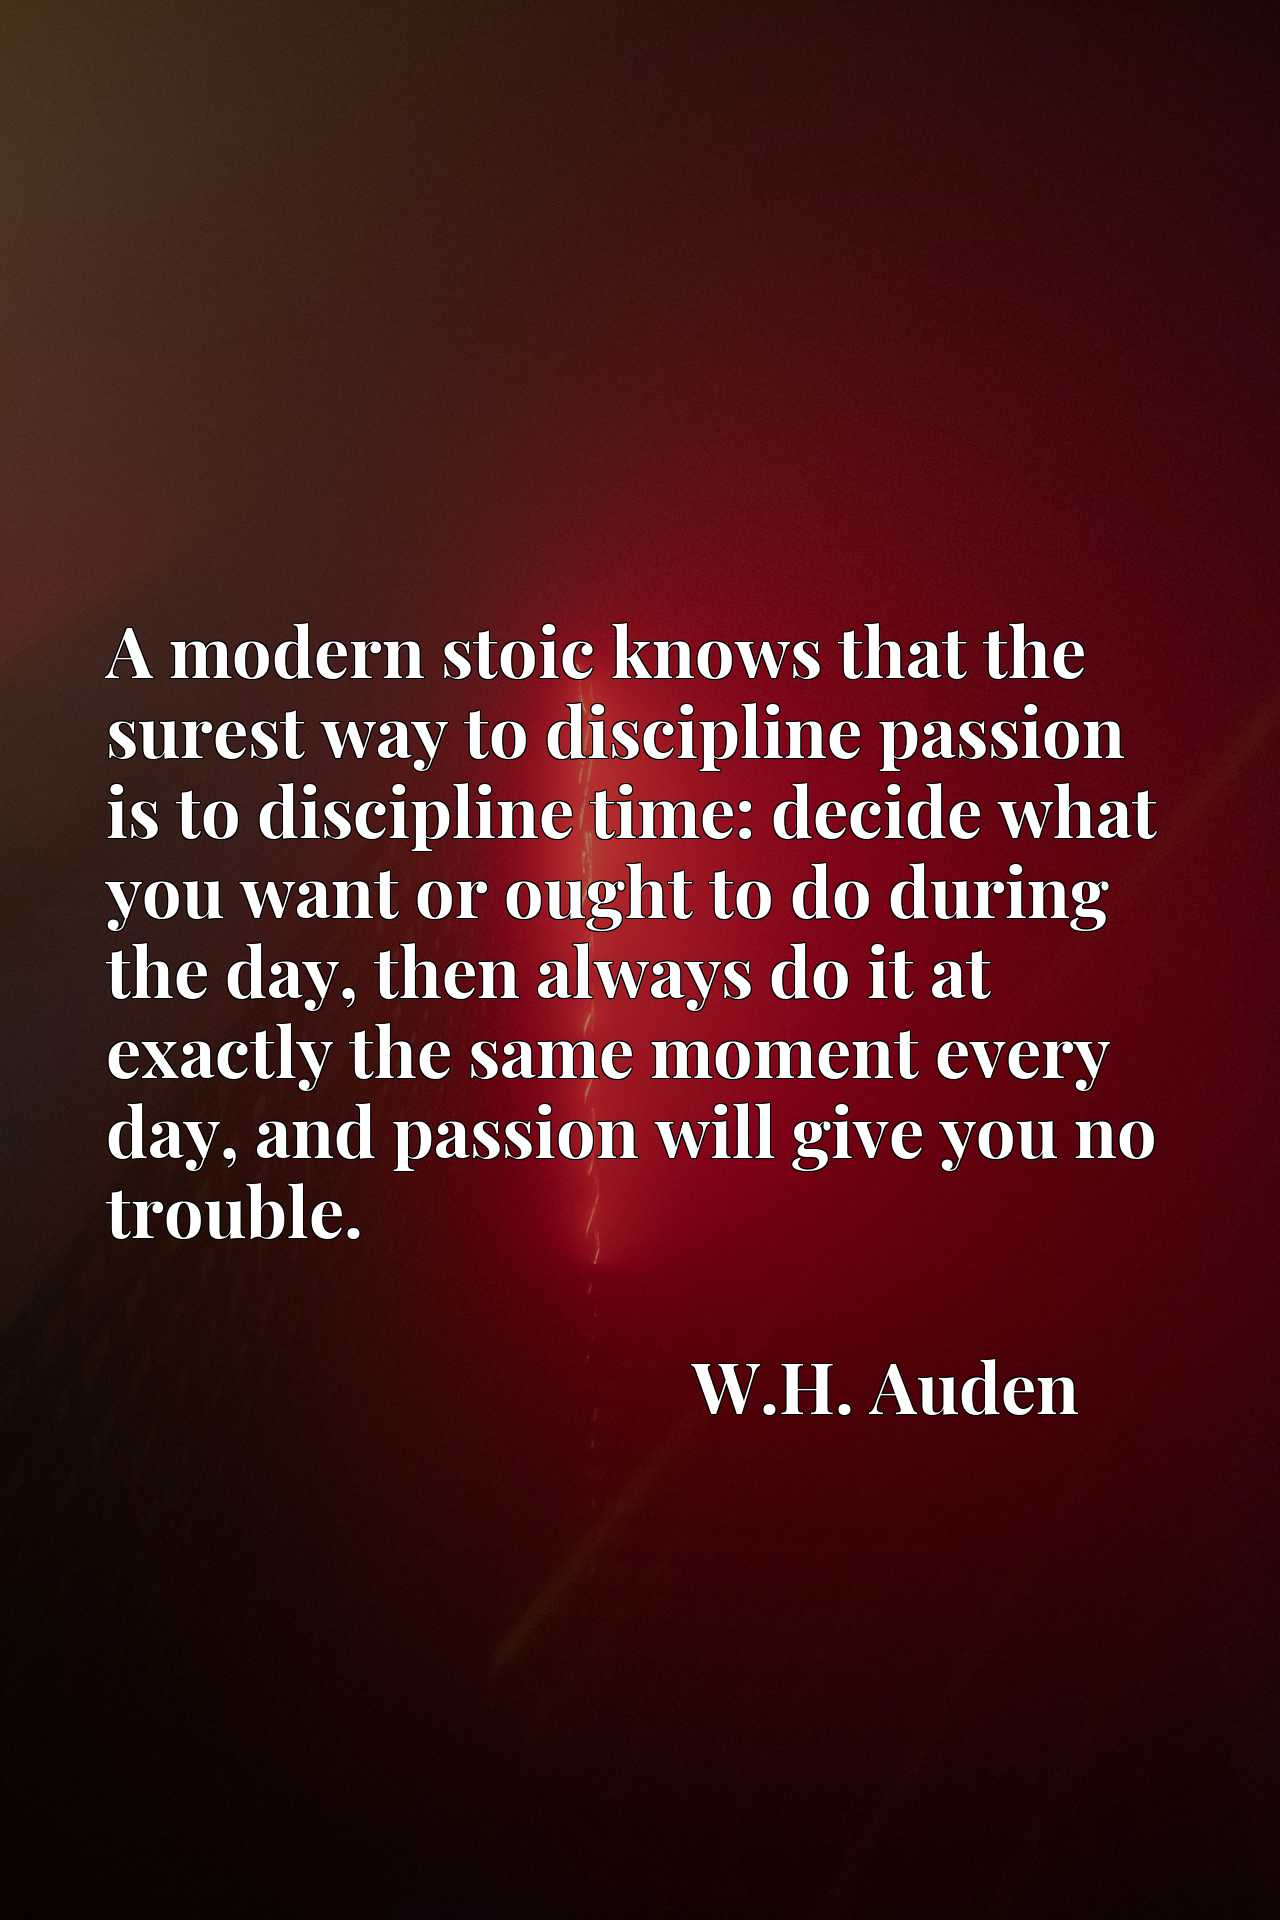 A modern stoic knows that the surest way to discipline passion is to discipline time: decide what you want or ought to do during the day, then always do it at exactly the same moment every day, and passion will give you no trouble.